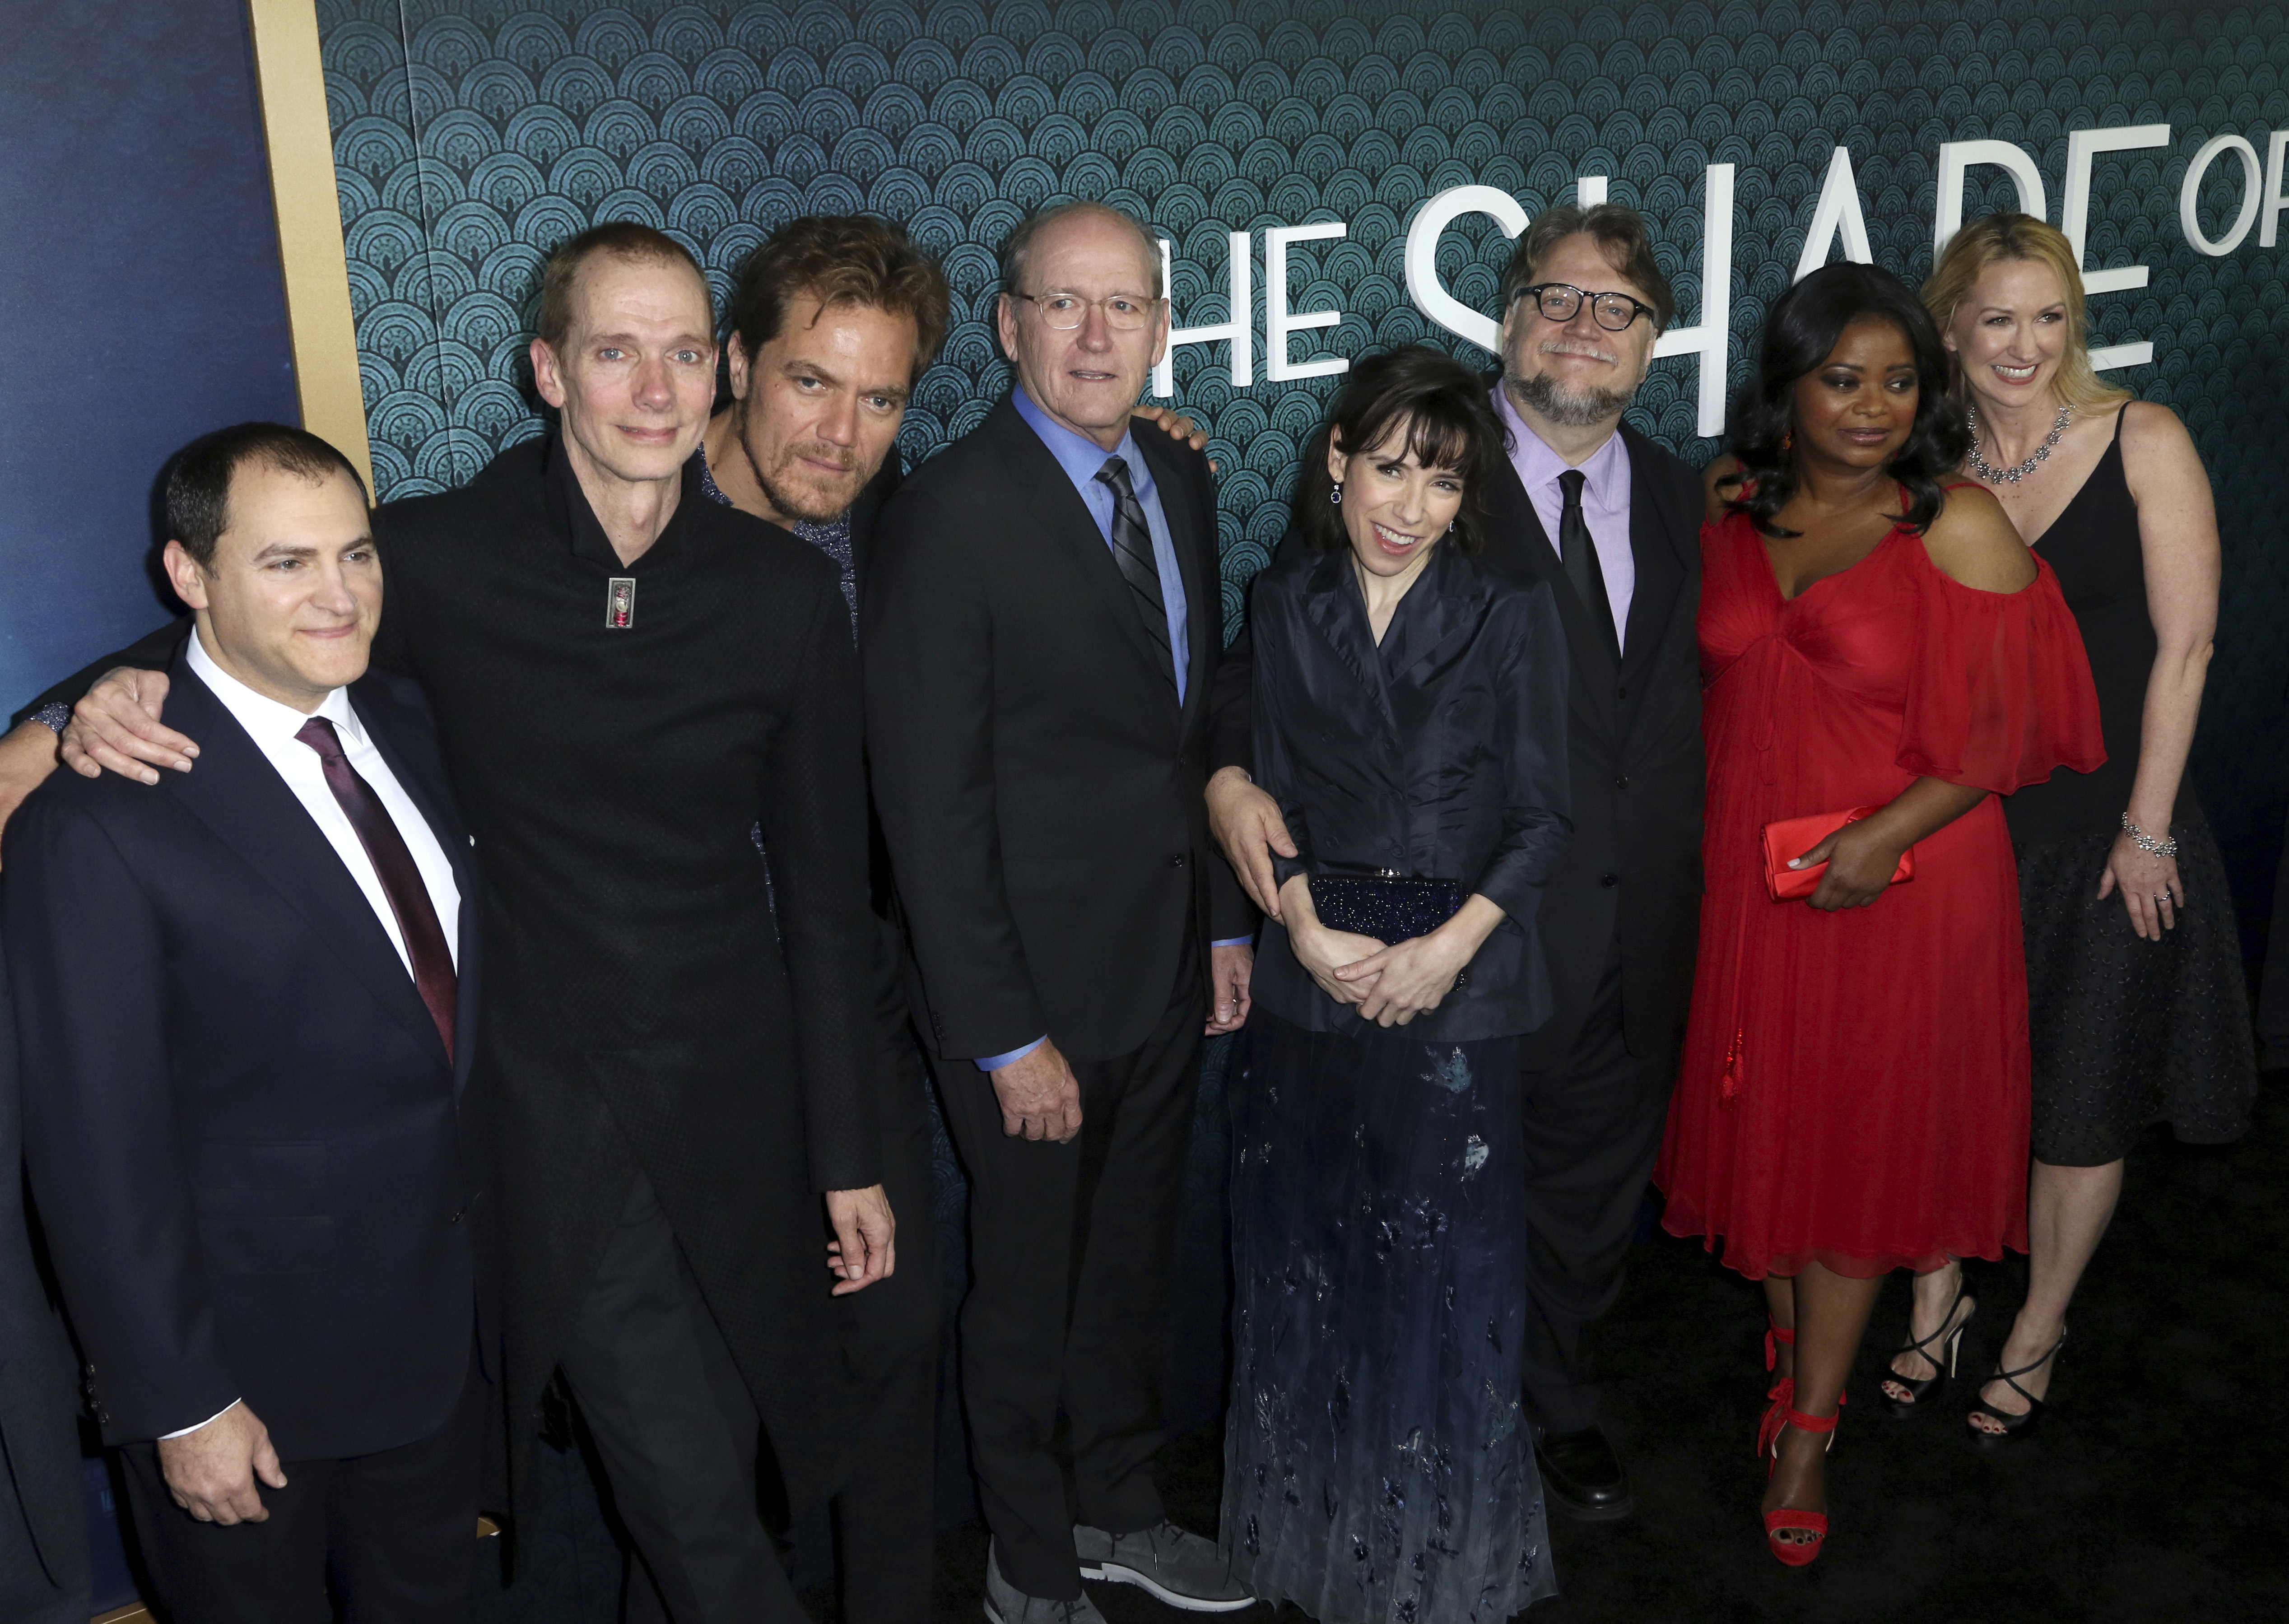 "Michael Stuhlbarg, Doug Jones, Michael Shannon, Richard Jenkins, Sally Hawkins, Guillermo del Toro, Octavia Spencer, Vanessa Taylor. Michael Stuhlbarg, from left, Doug Jones, Michael Shannon, Richard Jenkins, Sally Hawkins, director Guillermo del Toro, Octavia Spencer and screenwriter Vanessa Taylor arrive at the LA Premiere of ""The Shape of Water"" at the Academy of Motion Picture Arts and Sciences, in Beverly Hills, CalifLA Premiere of ""The Shape of Water"", Beverly Hills, USA - 15 Nov 2017"